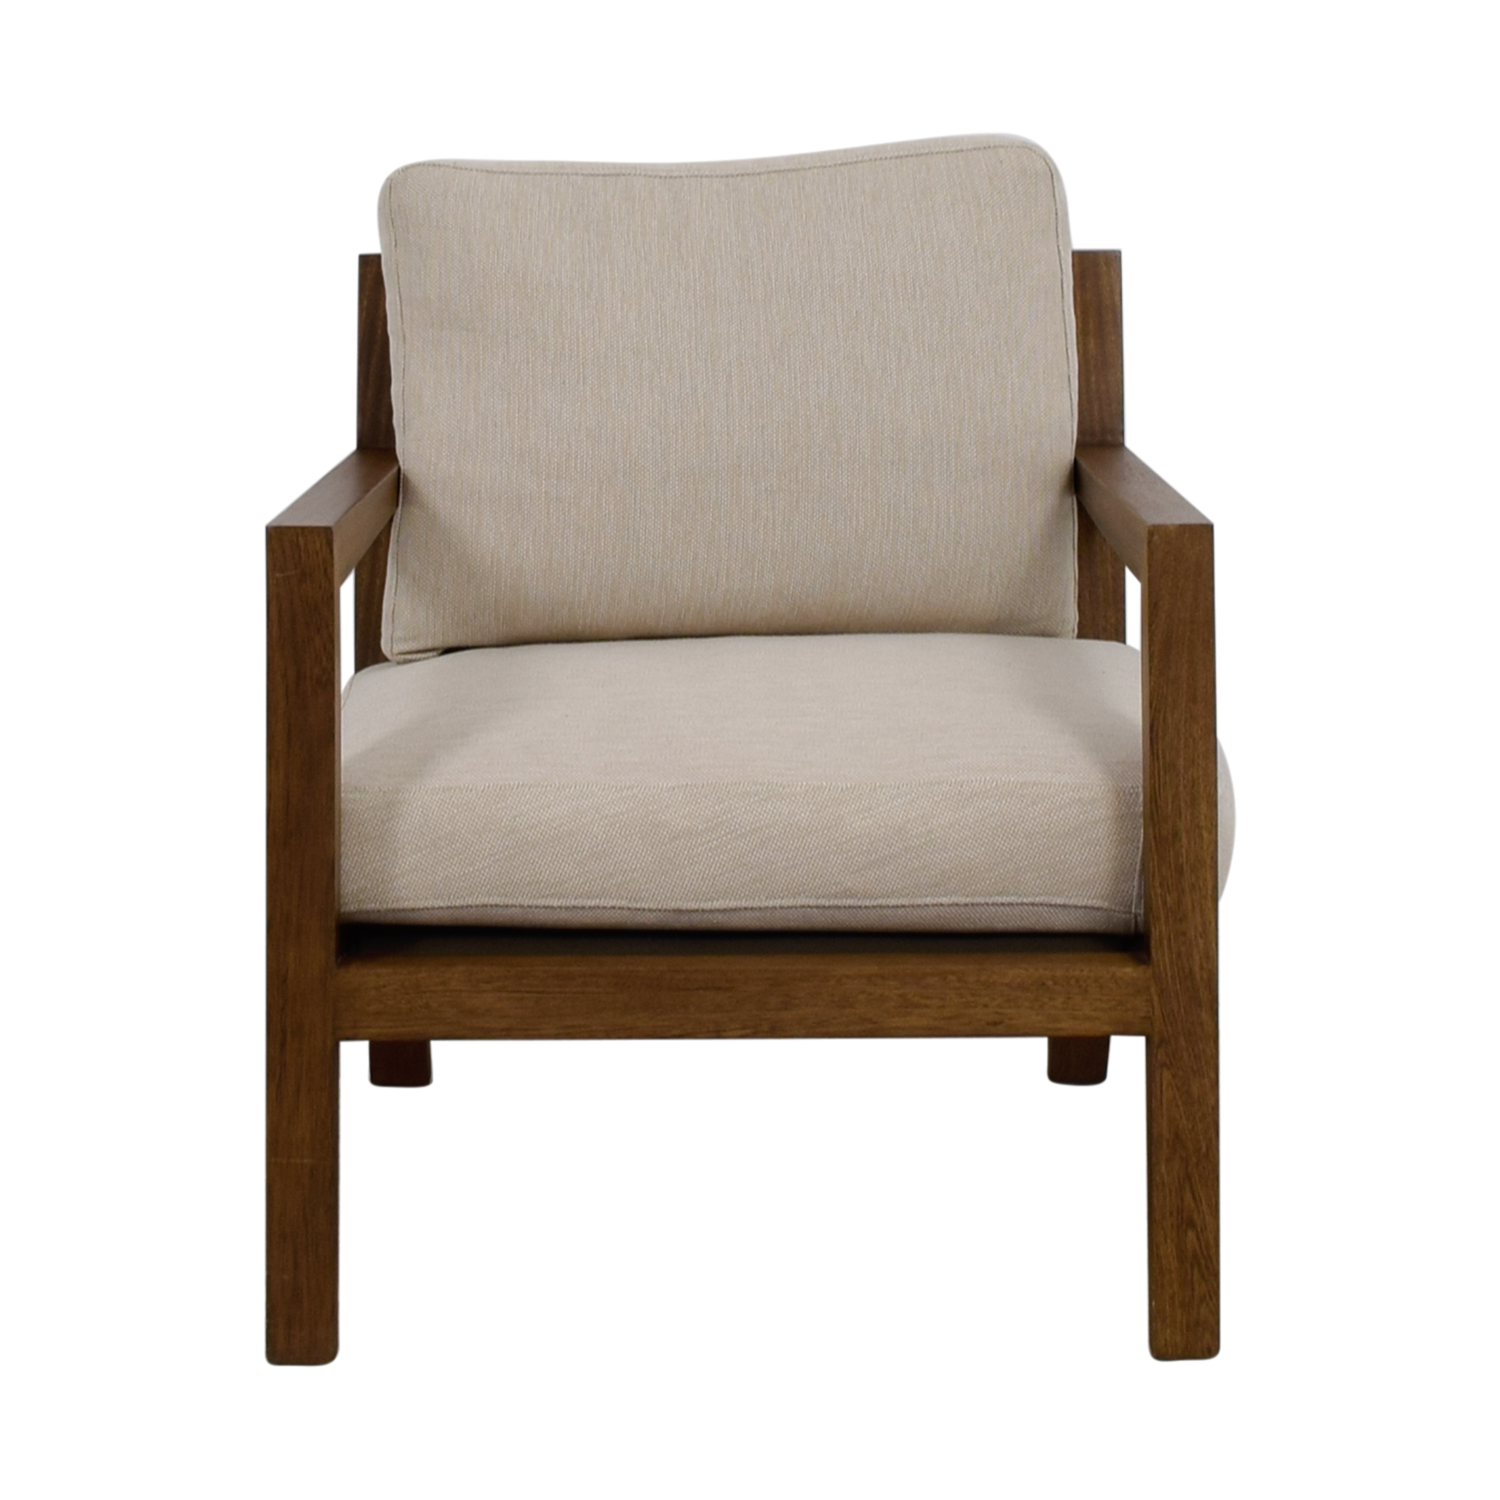 shop Zientte Niebla Beige Accent Chair Zientte Accent Chairs